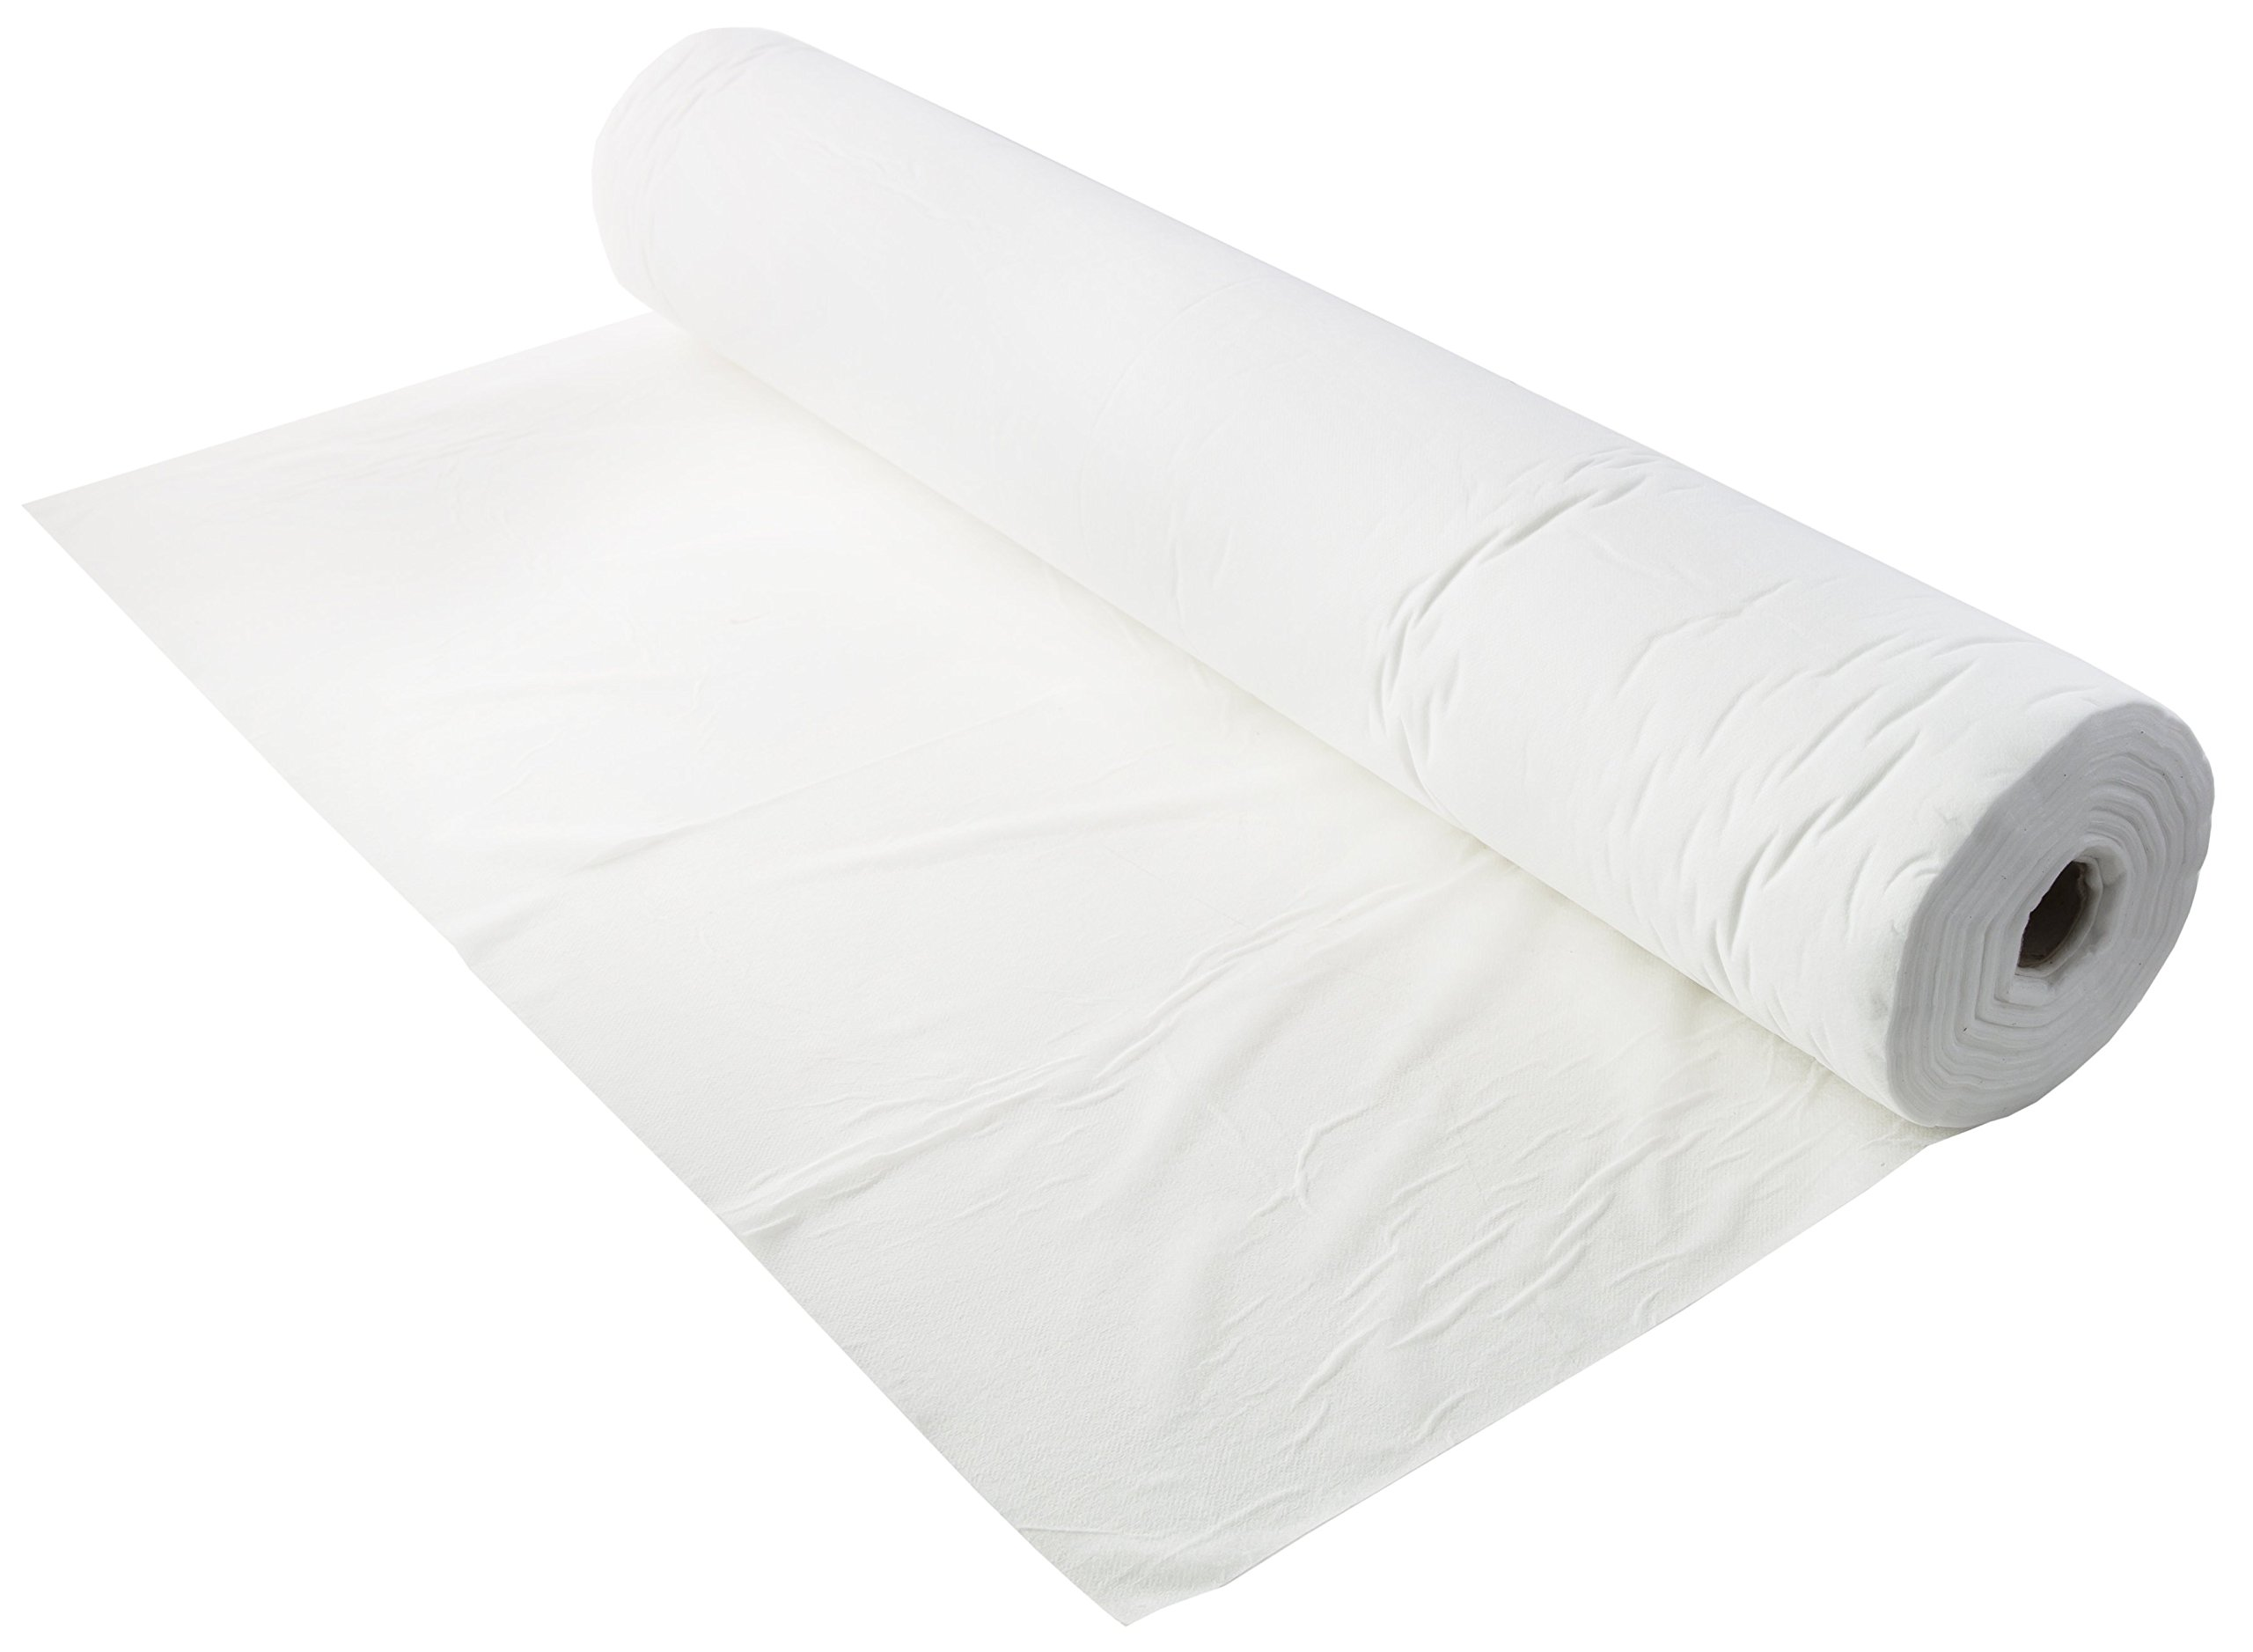 (6 Rolls) Disposable Non-Woven Bed Sheet | 50 Perforated Sheets with Precut Face Holes (31.5'' X 75'' Per Sheet) | Hygienic Protection for Massage, Spa, Beauty, or Tattoo Table | (White) by Crown